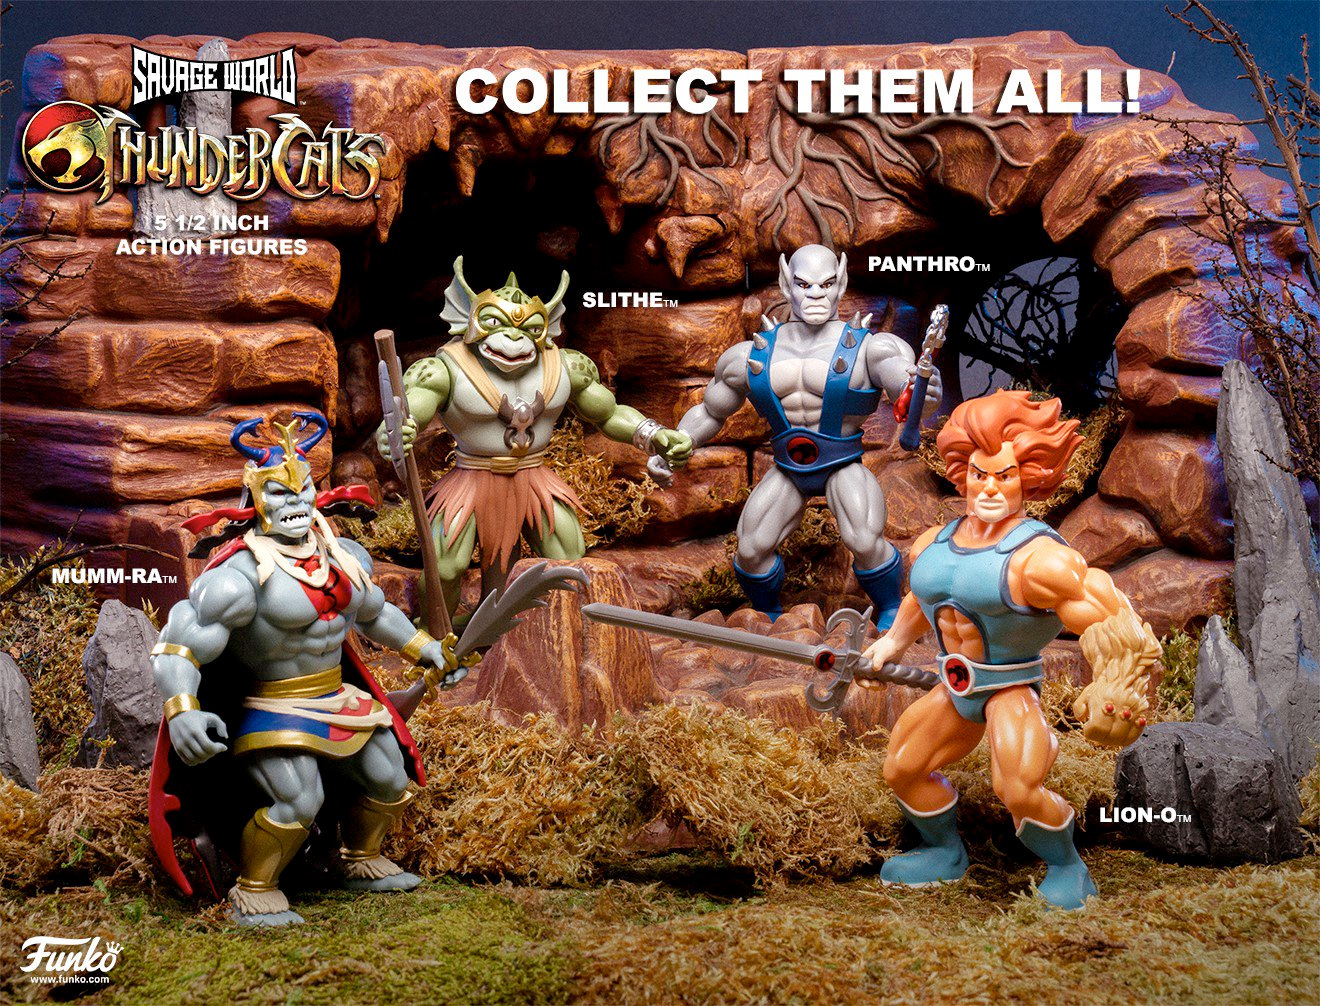 funko-unveils-their-savage-world-thundercats-action-figures2